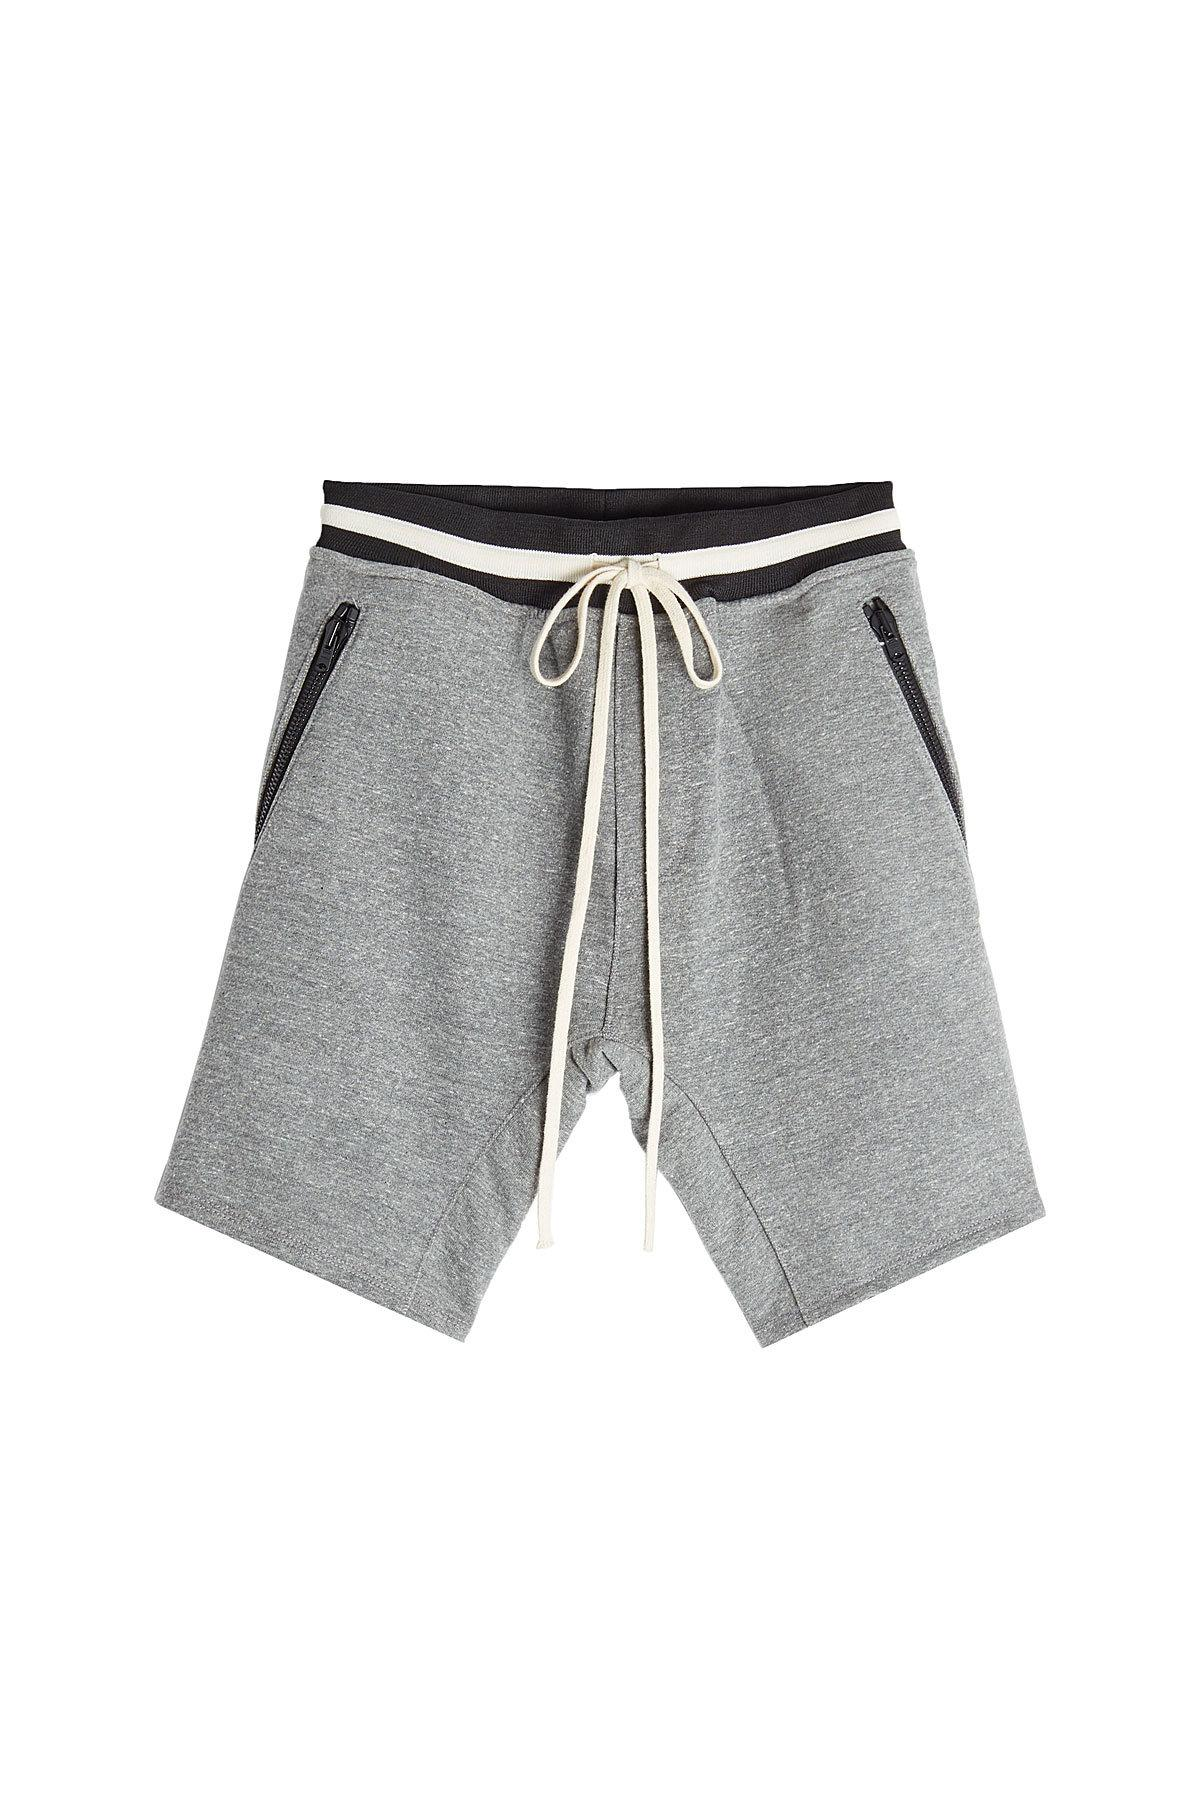 Fear Of God Shorts With Zipped Pockets In Grey